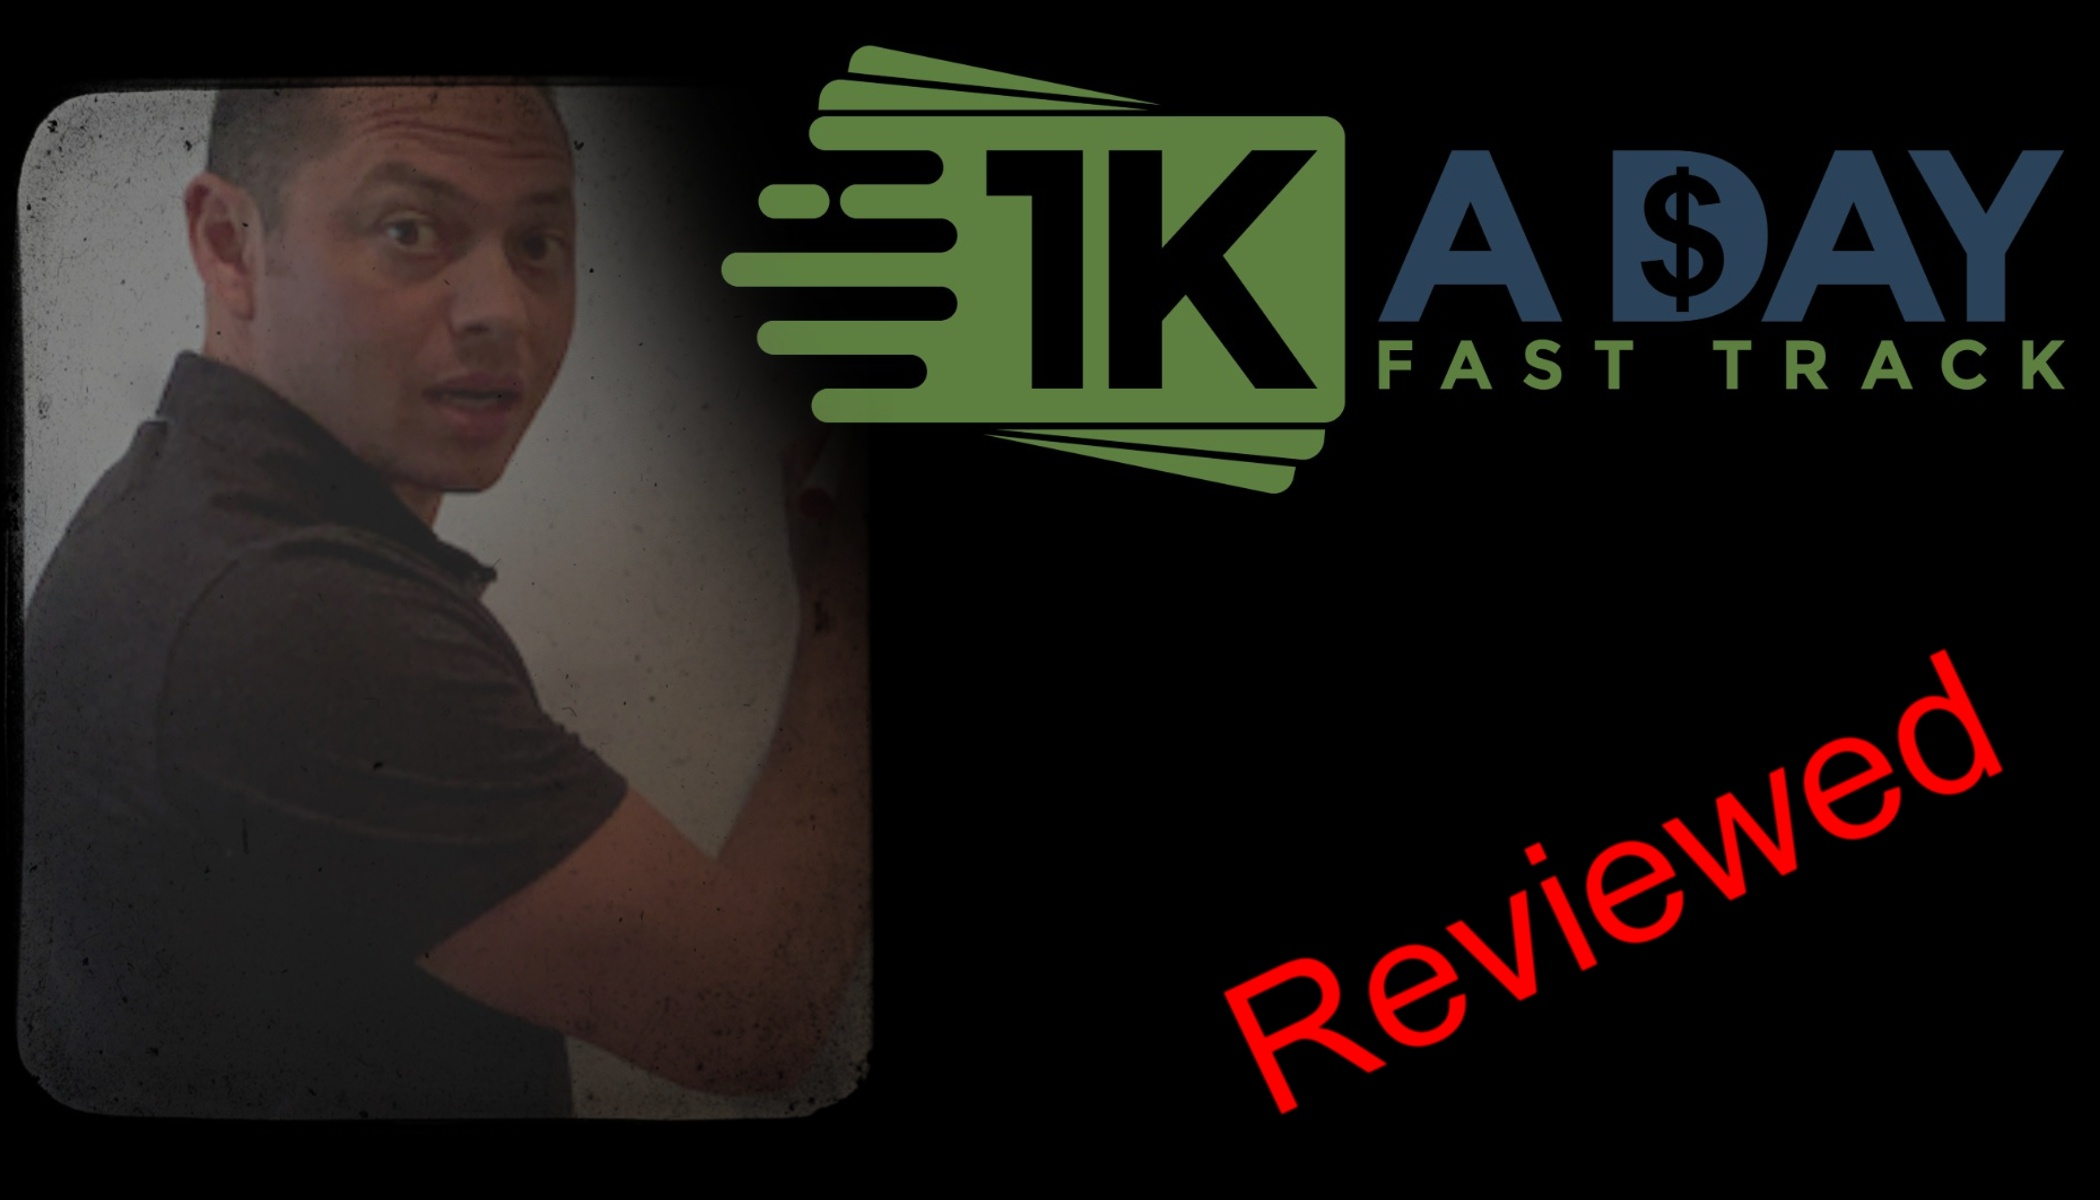 1K A Day Fast Track Review – Scam or Legit?